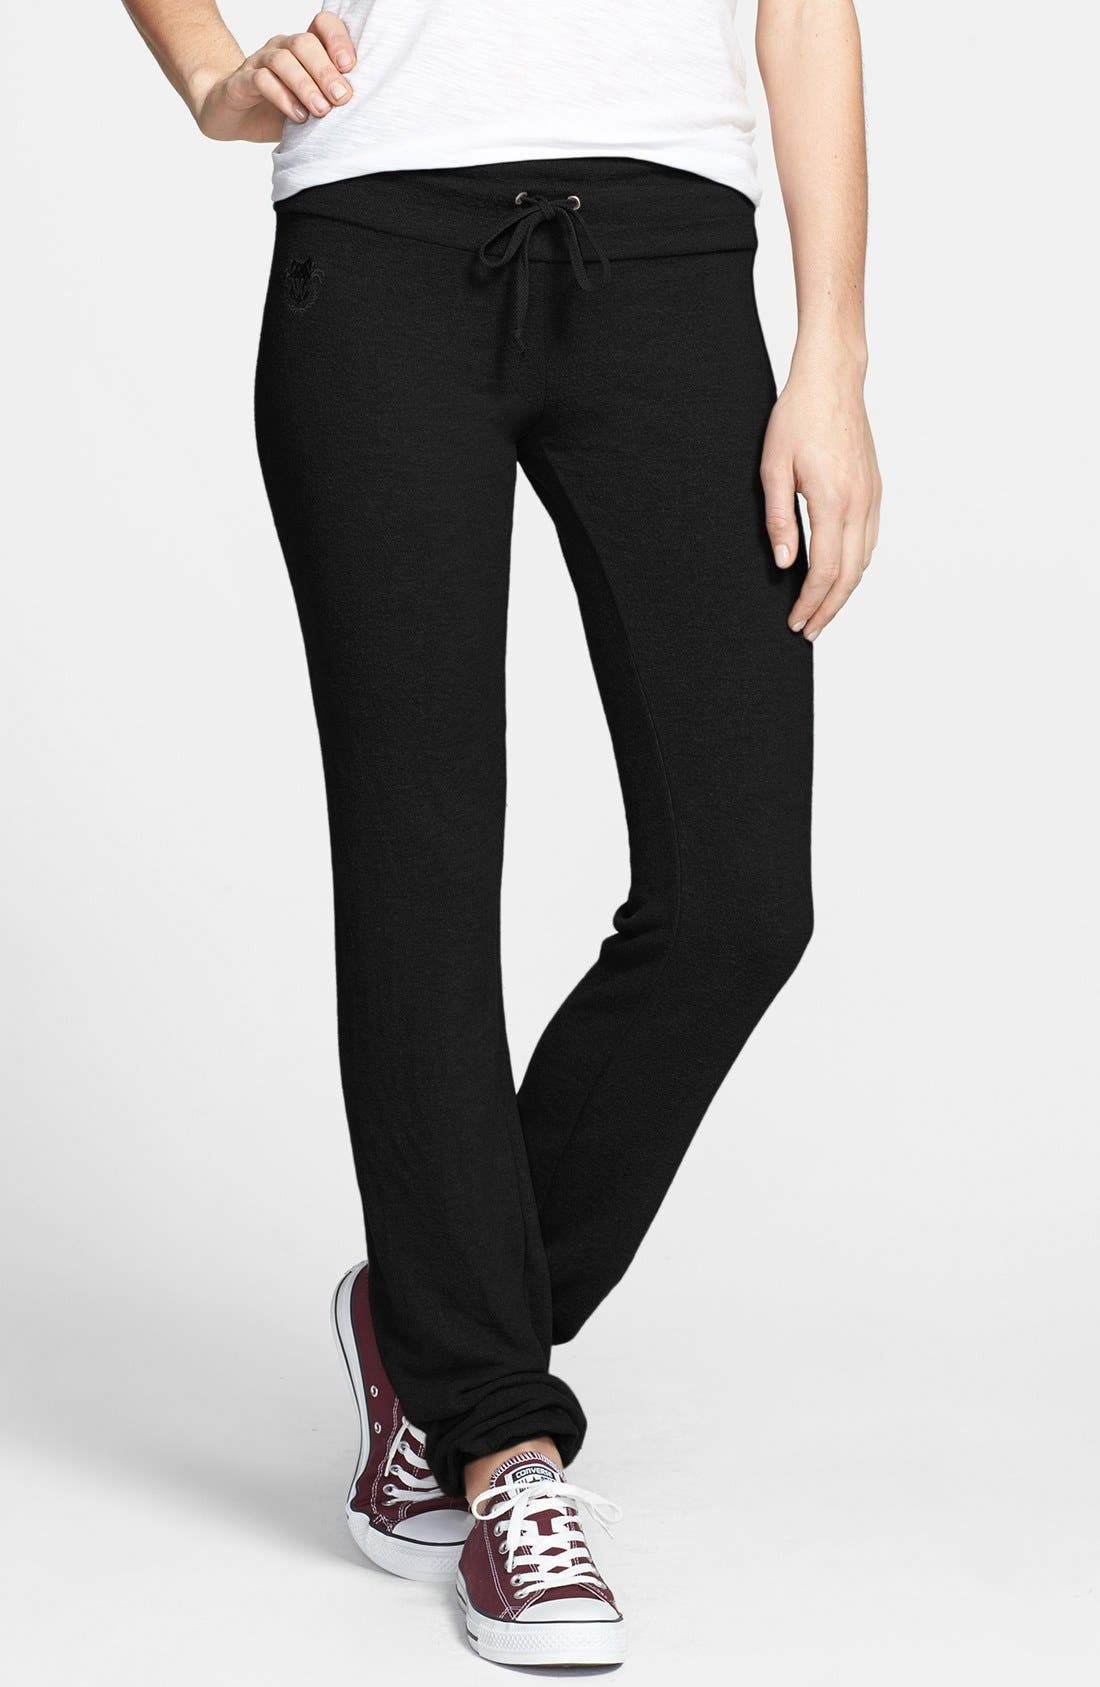 Main Image - Wildfox 'Basics - Malibu' Skinny Jogging Pants